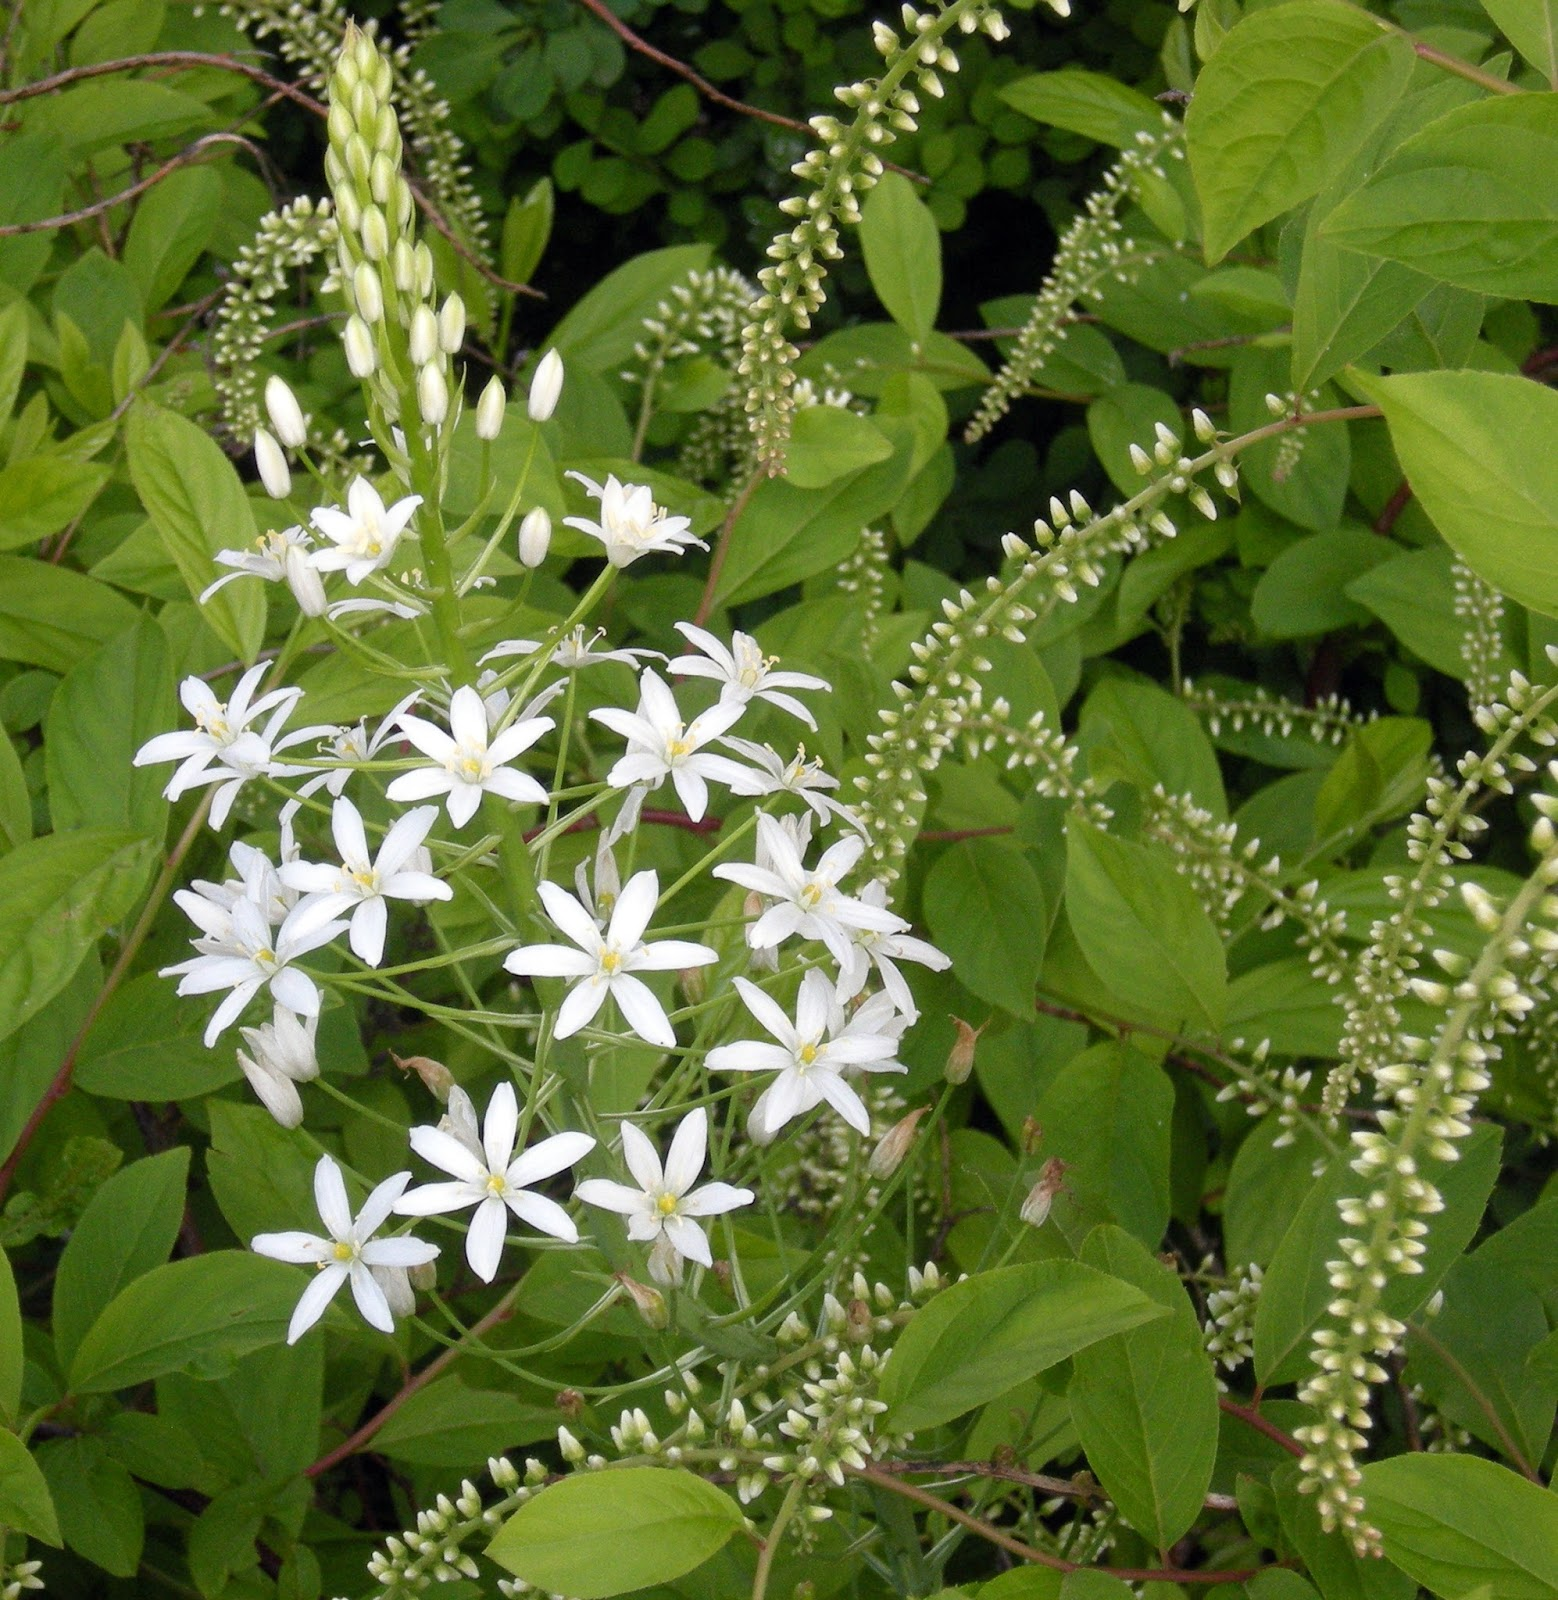 The Mathematical Tourist Star Flower